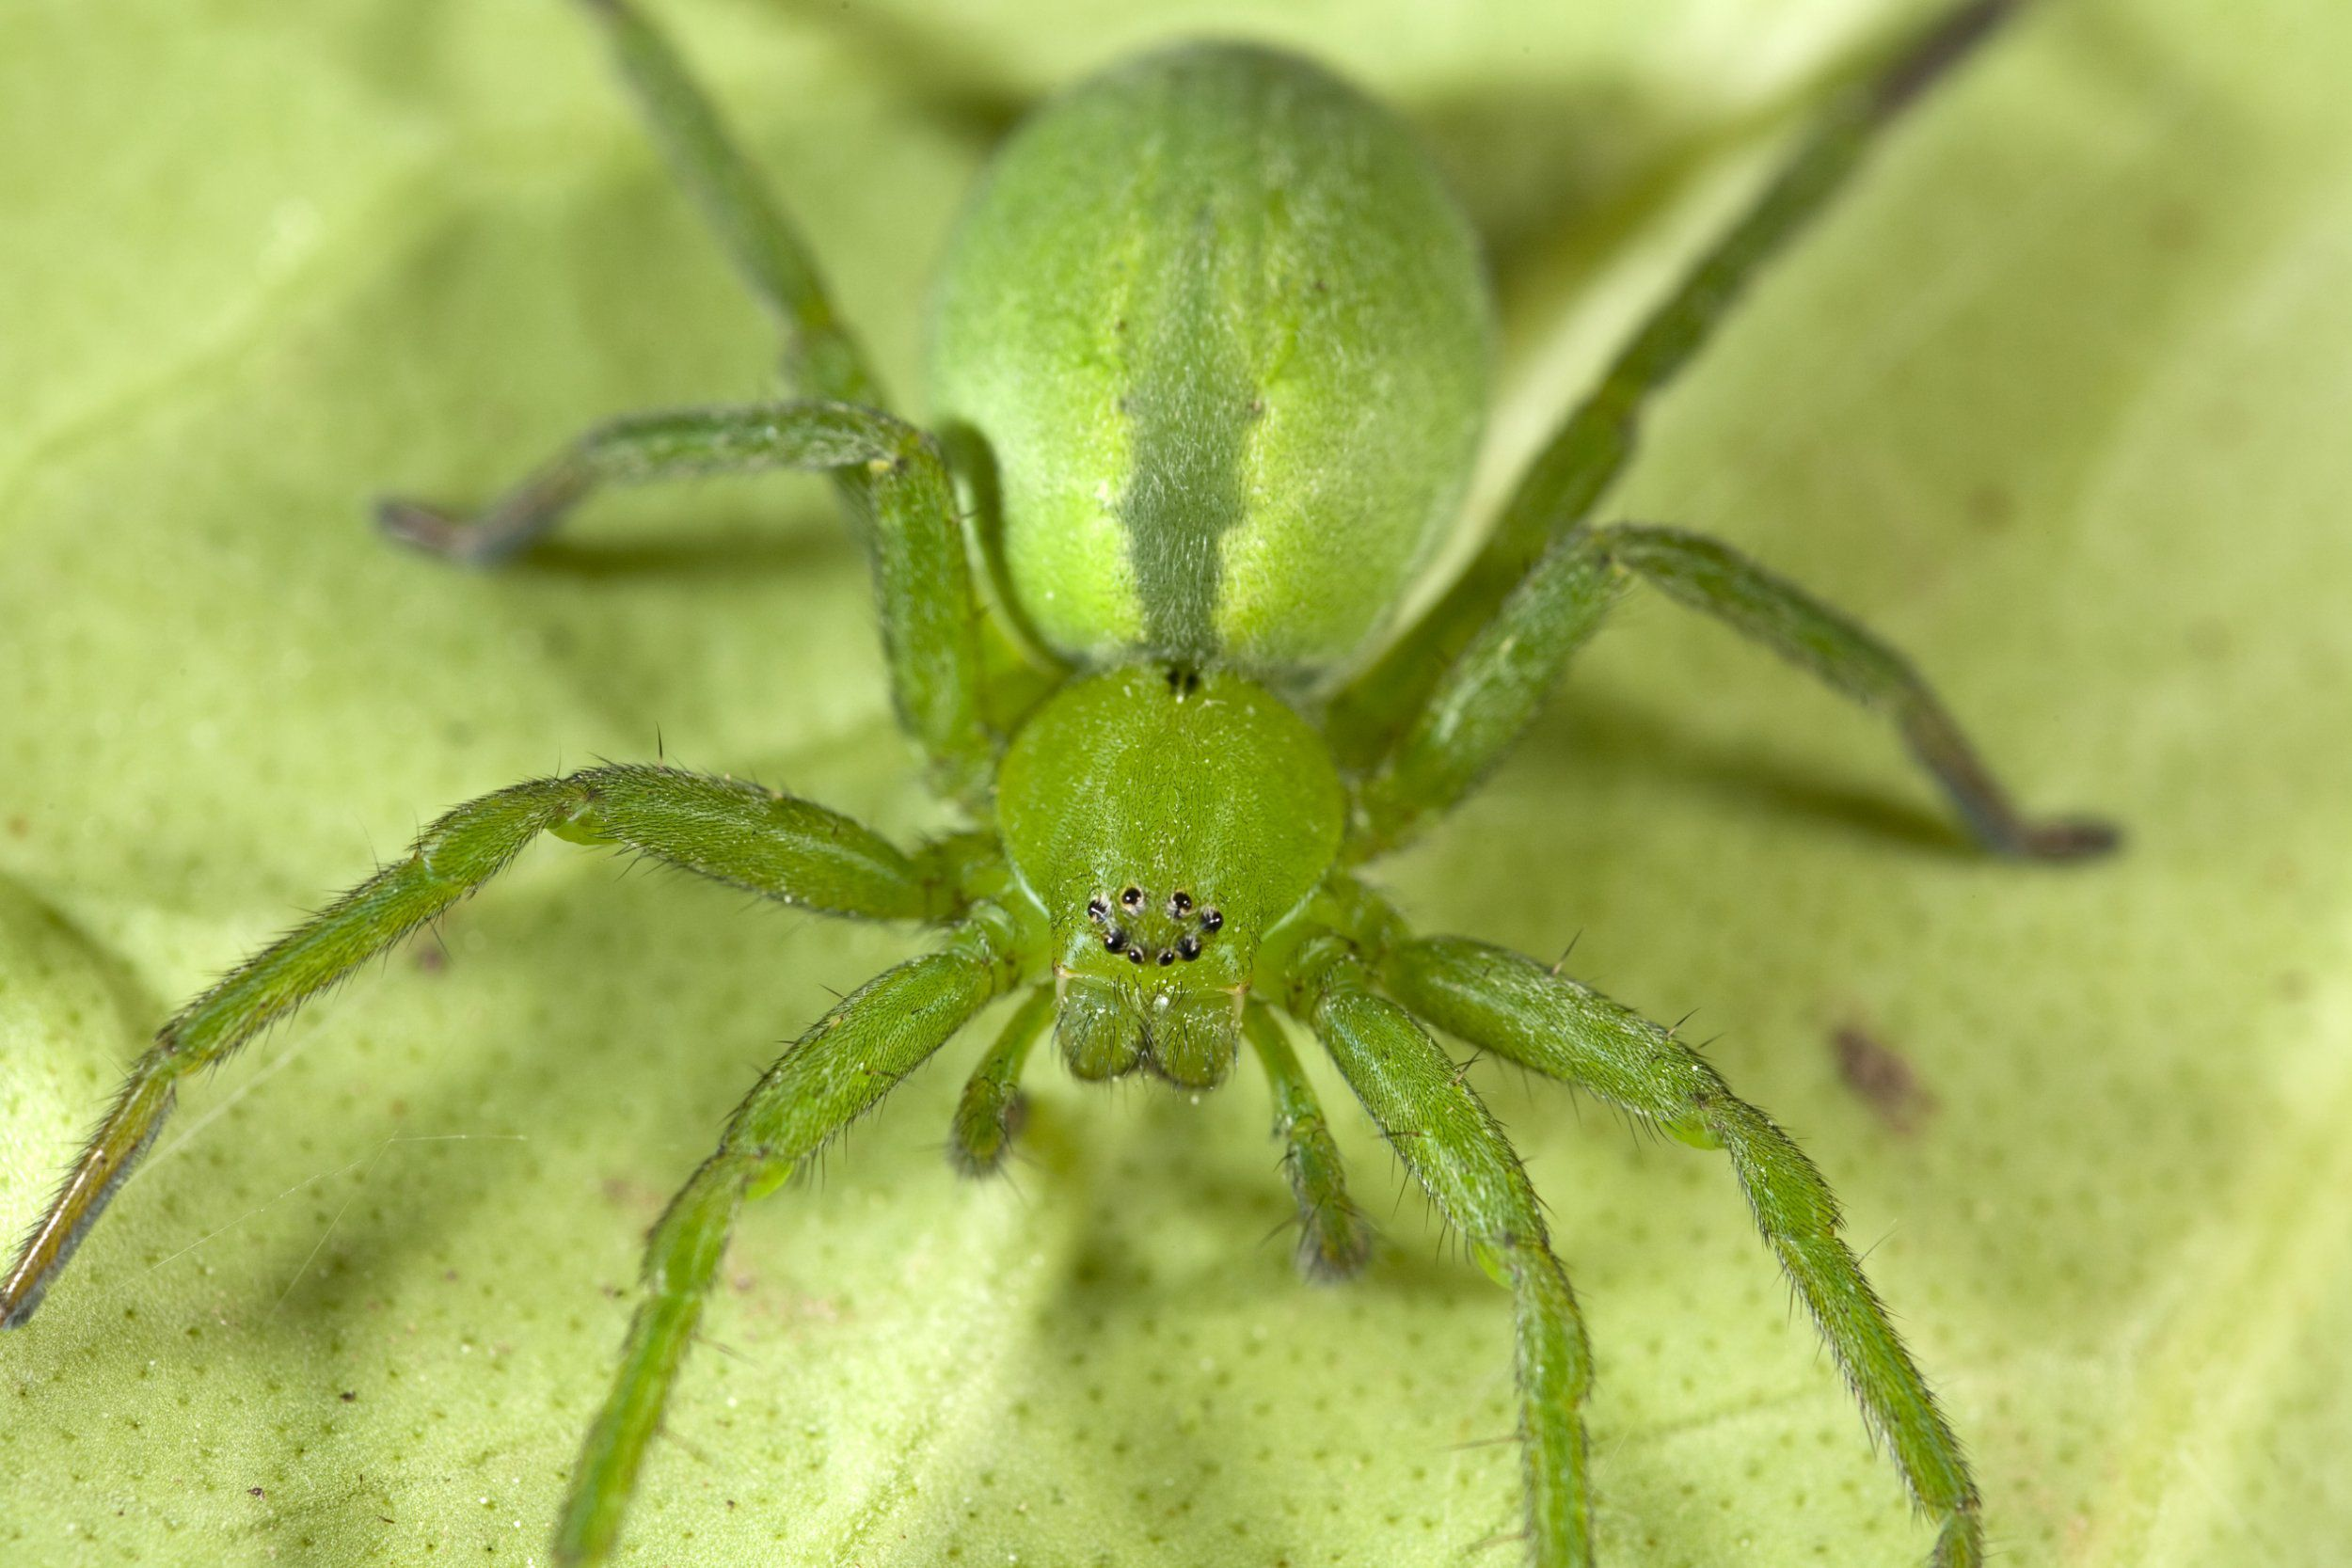 A green spider photo